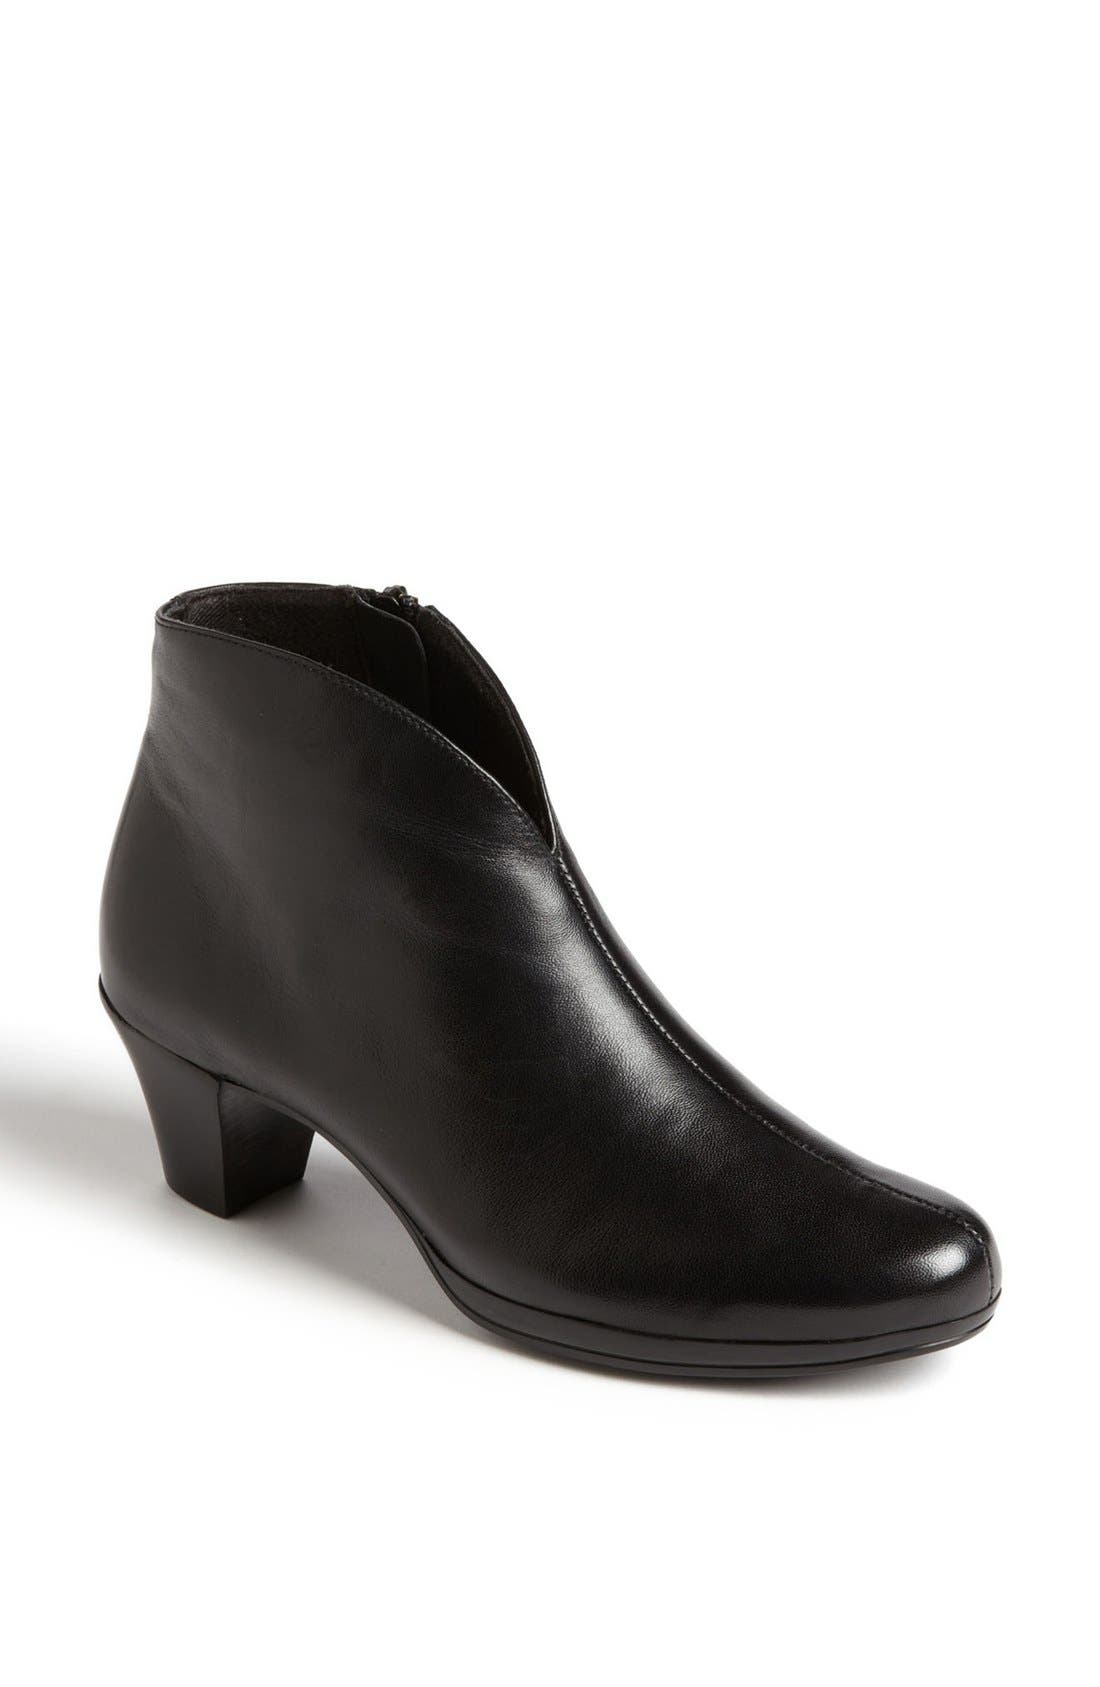 MUNRO 'Robyn' Boot, Main, color, BLACK LEATHER